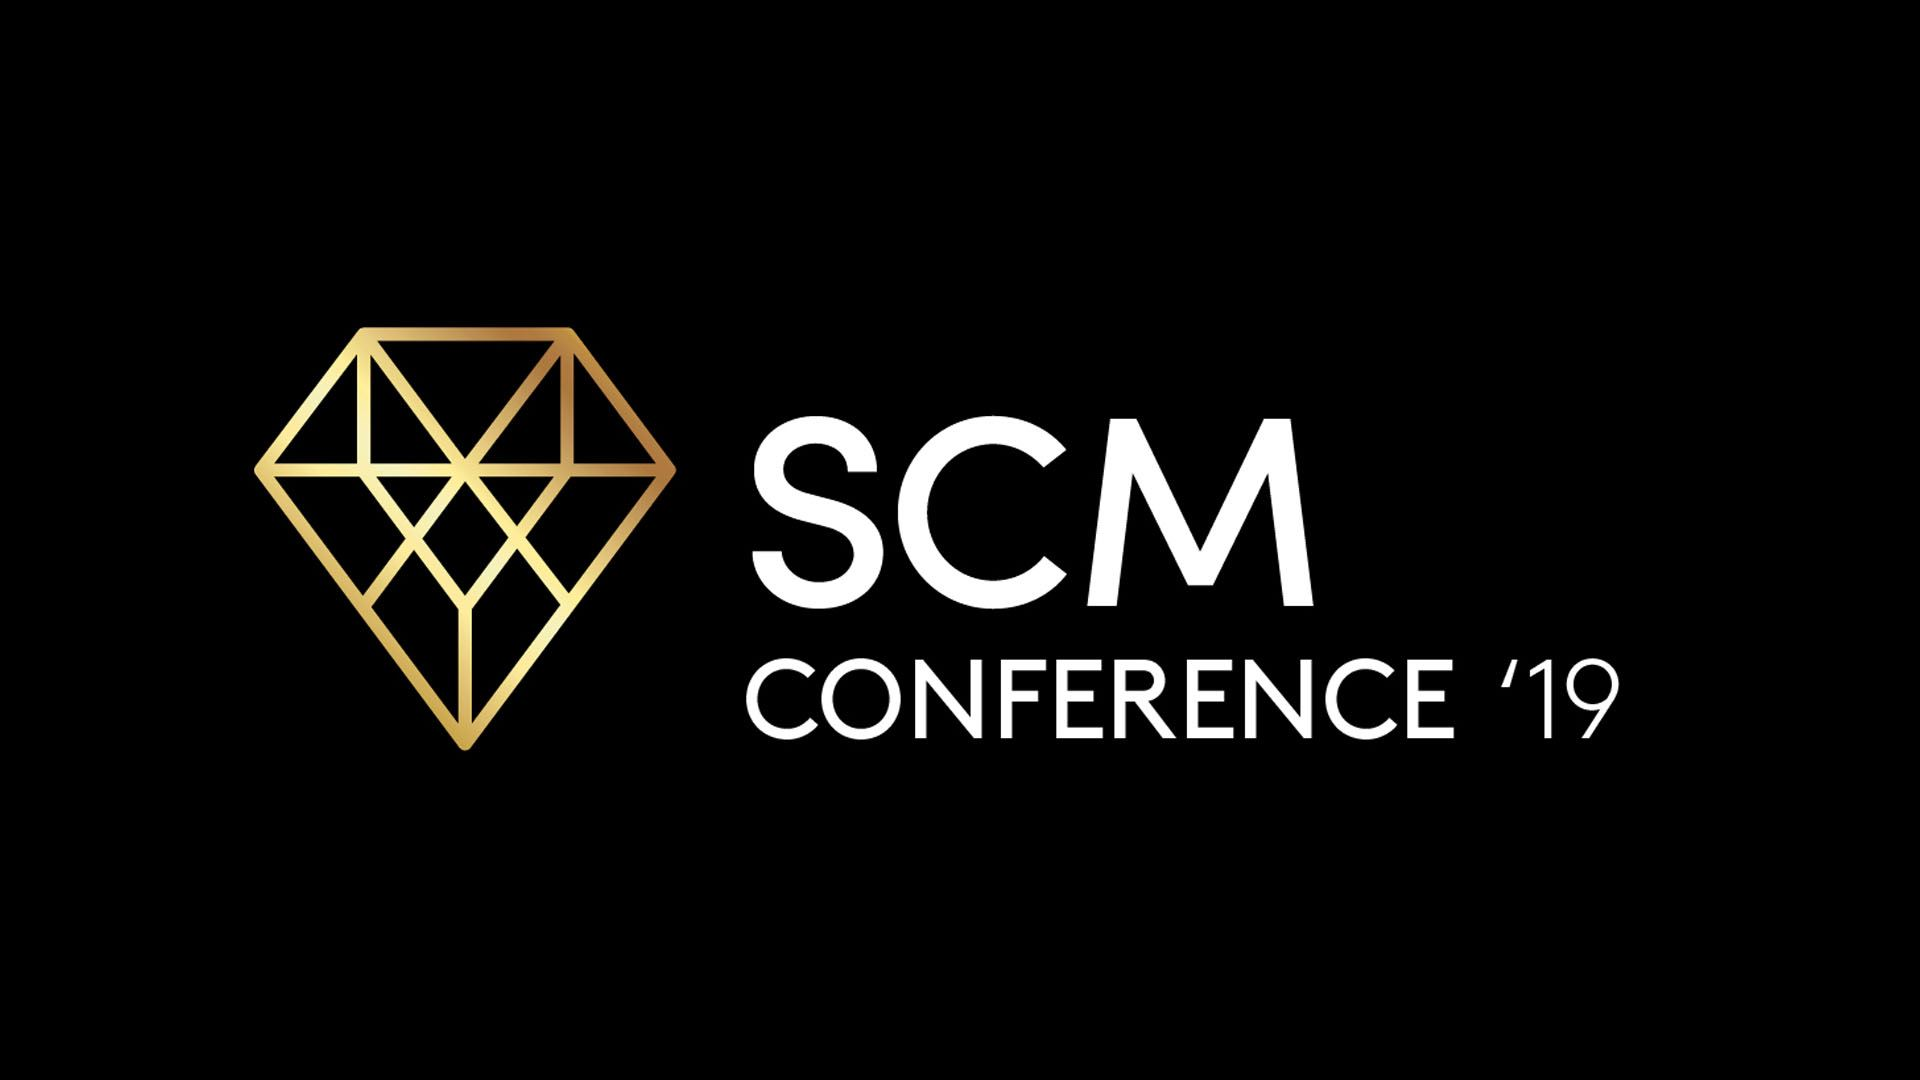 SMC Conference | Supply Chain Management